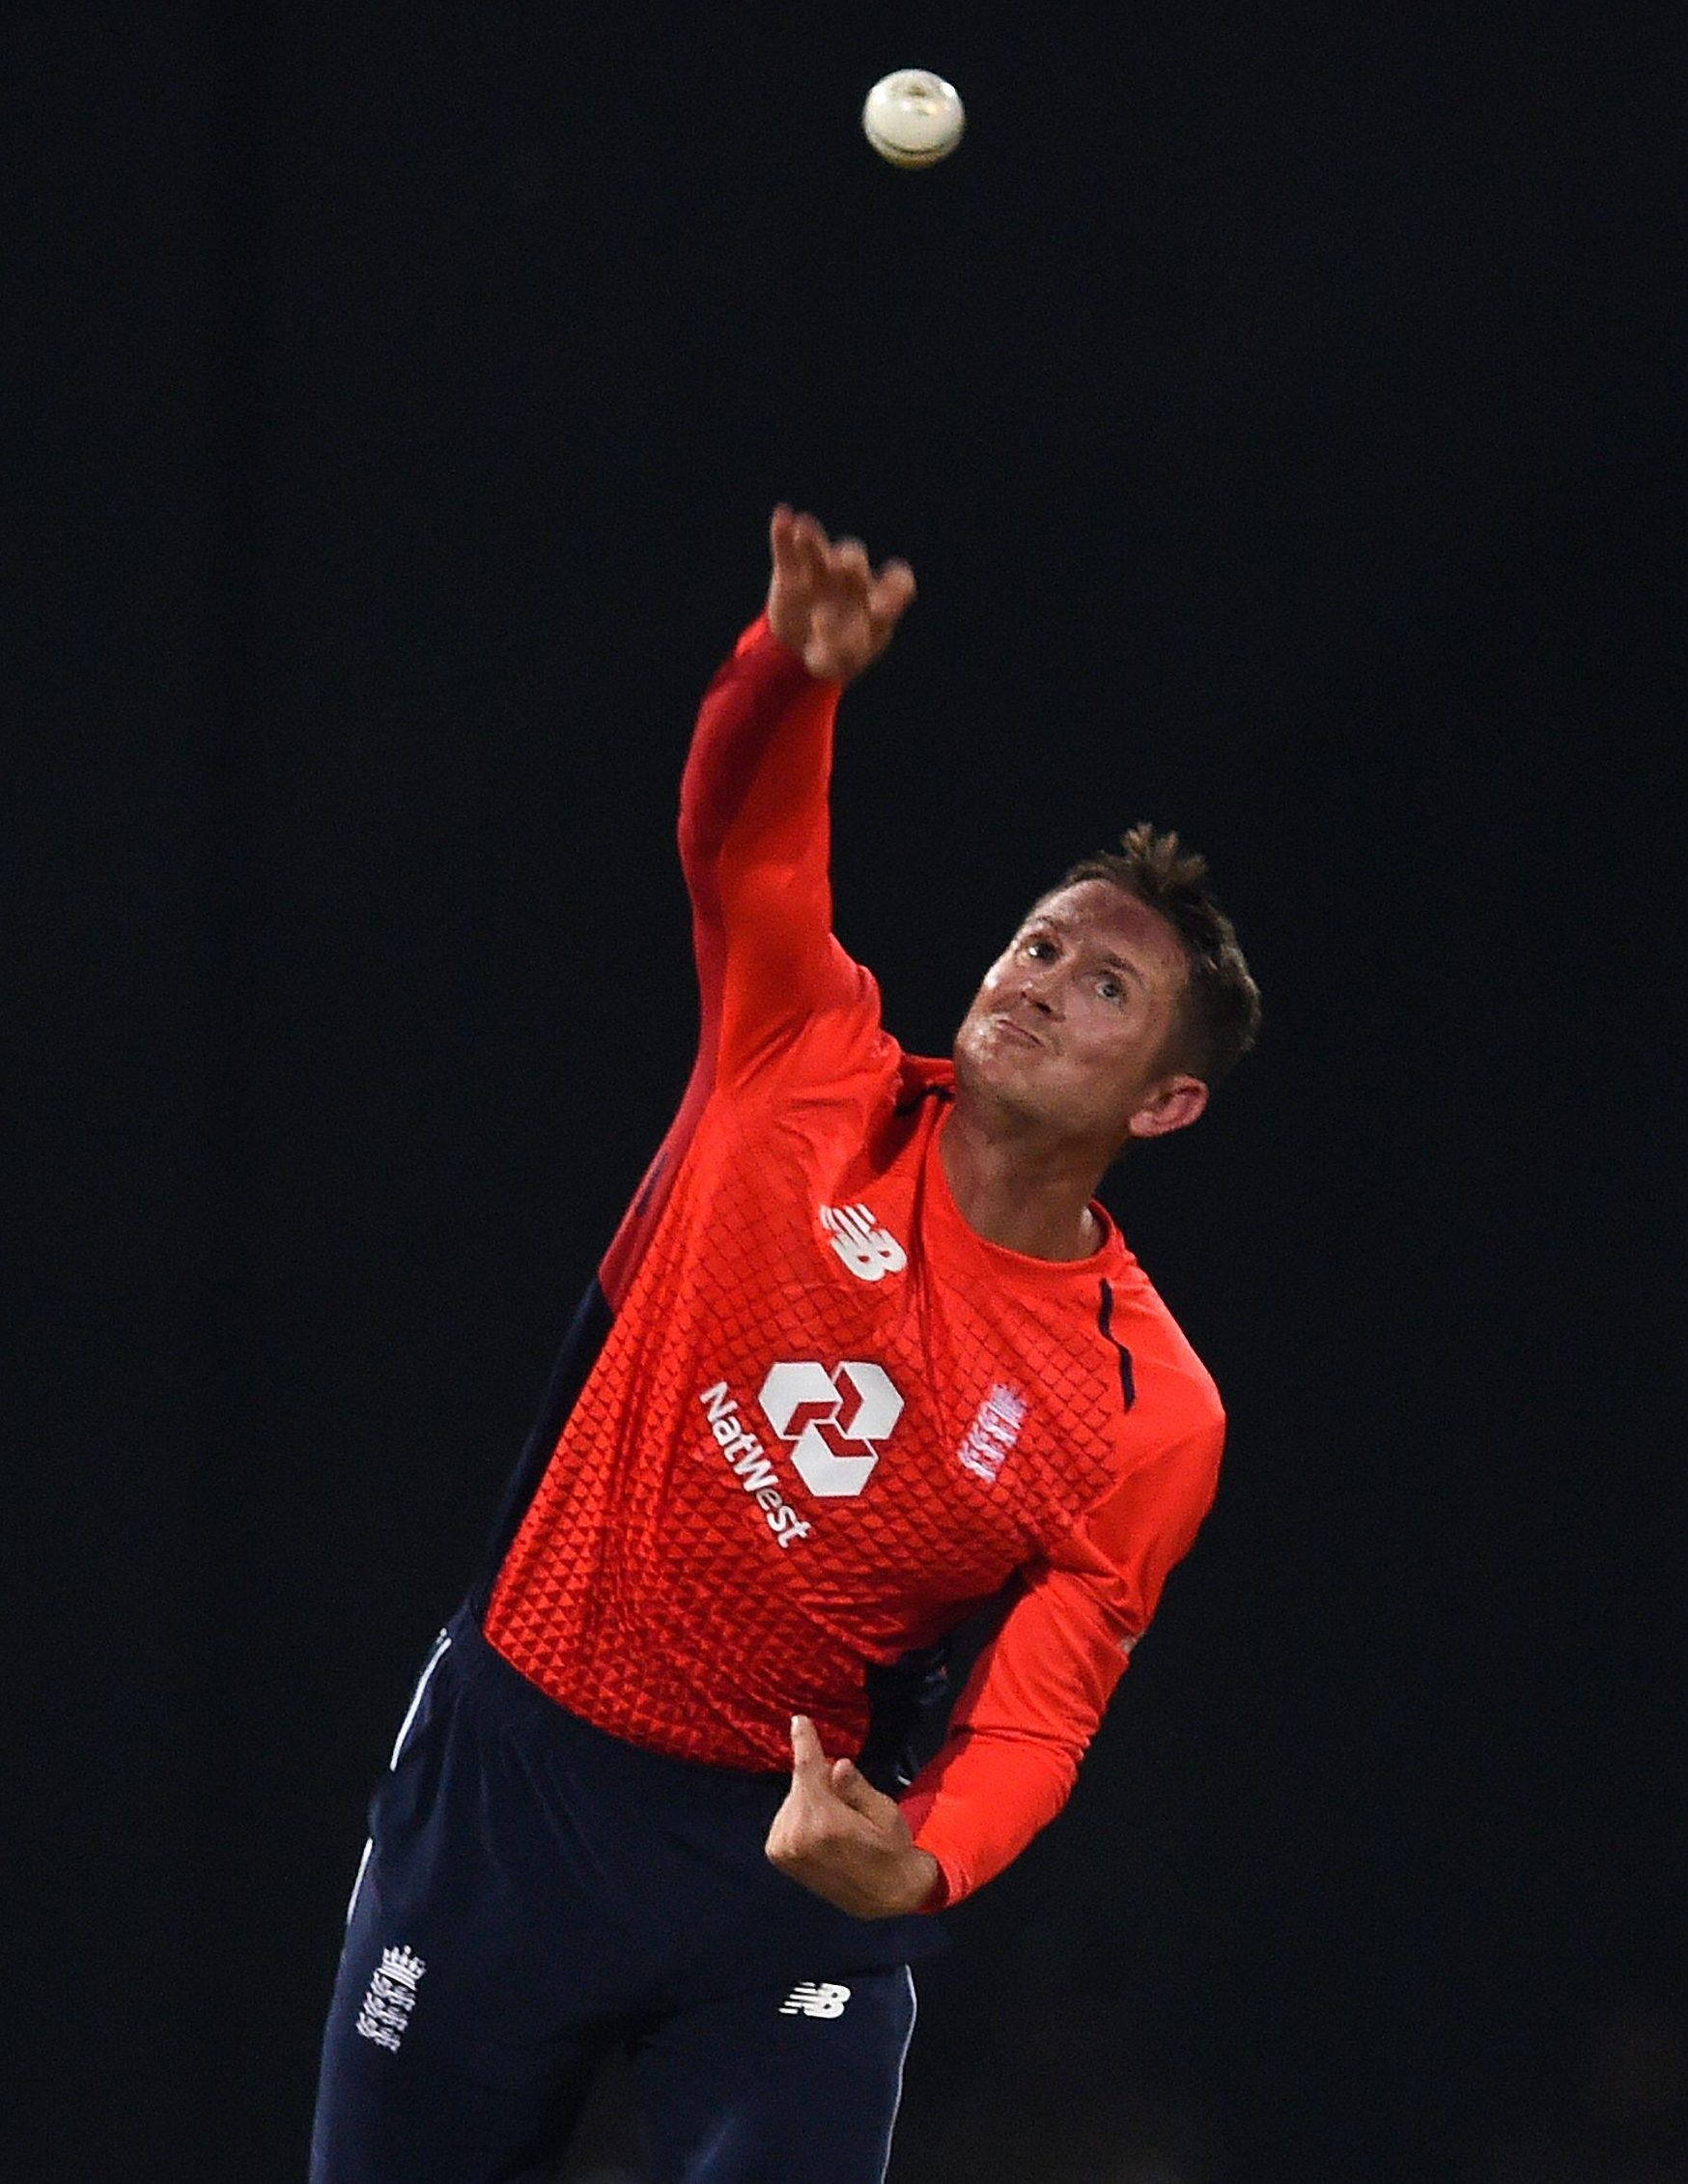 Although regarded as mainly a batsman, Denly bowls respectable leg-breaks and captain Eoin Morgan asked him to open the bowling as England defended 187-8